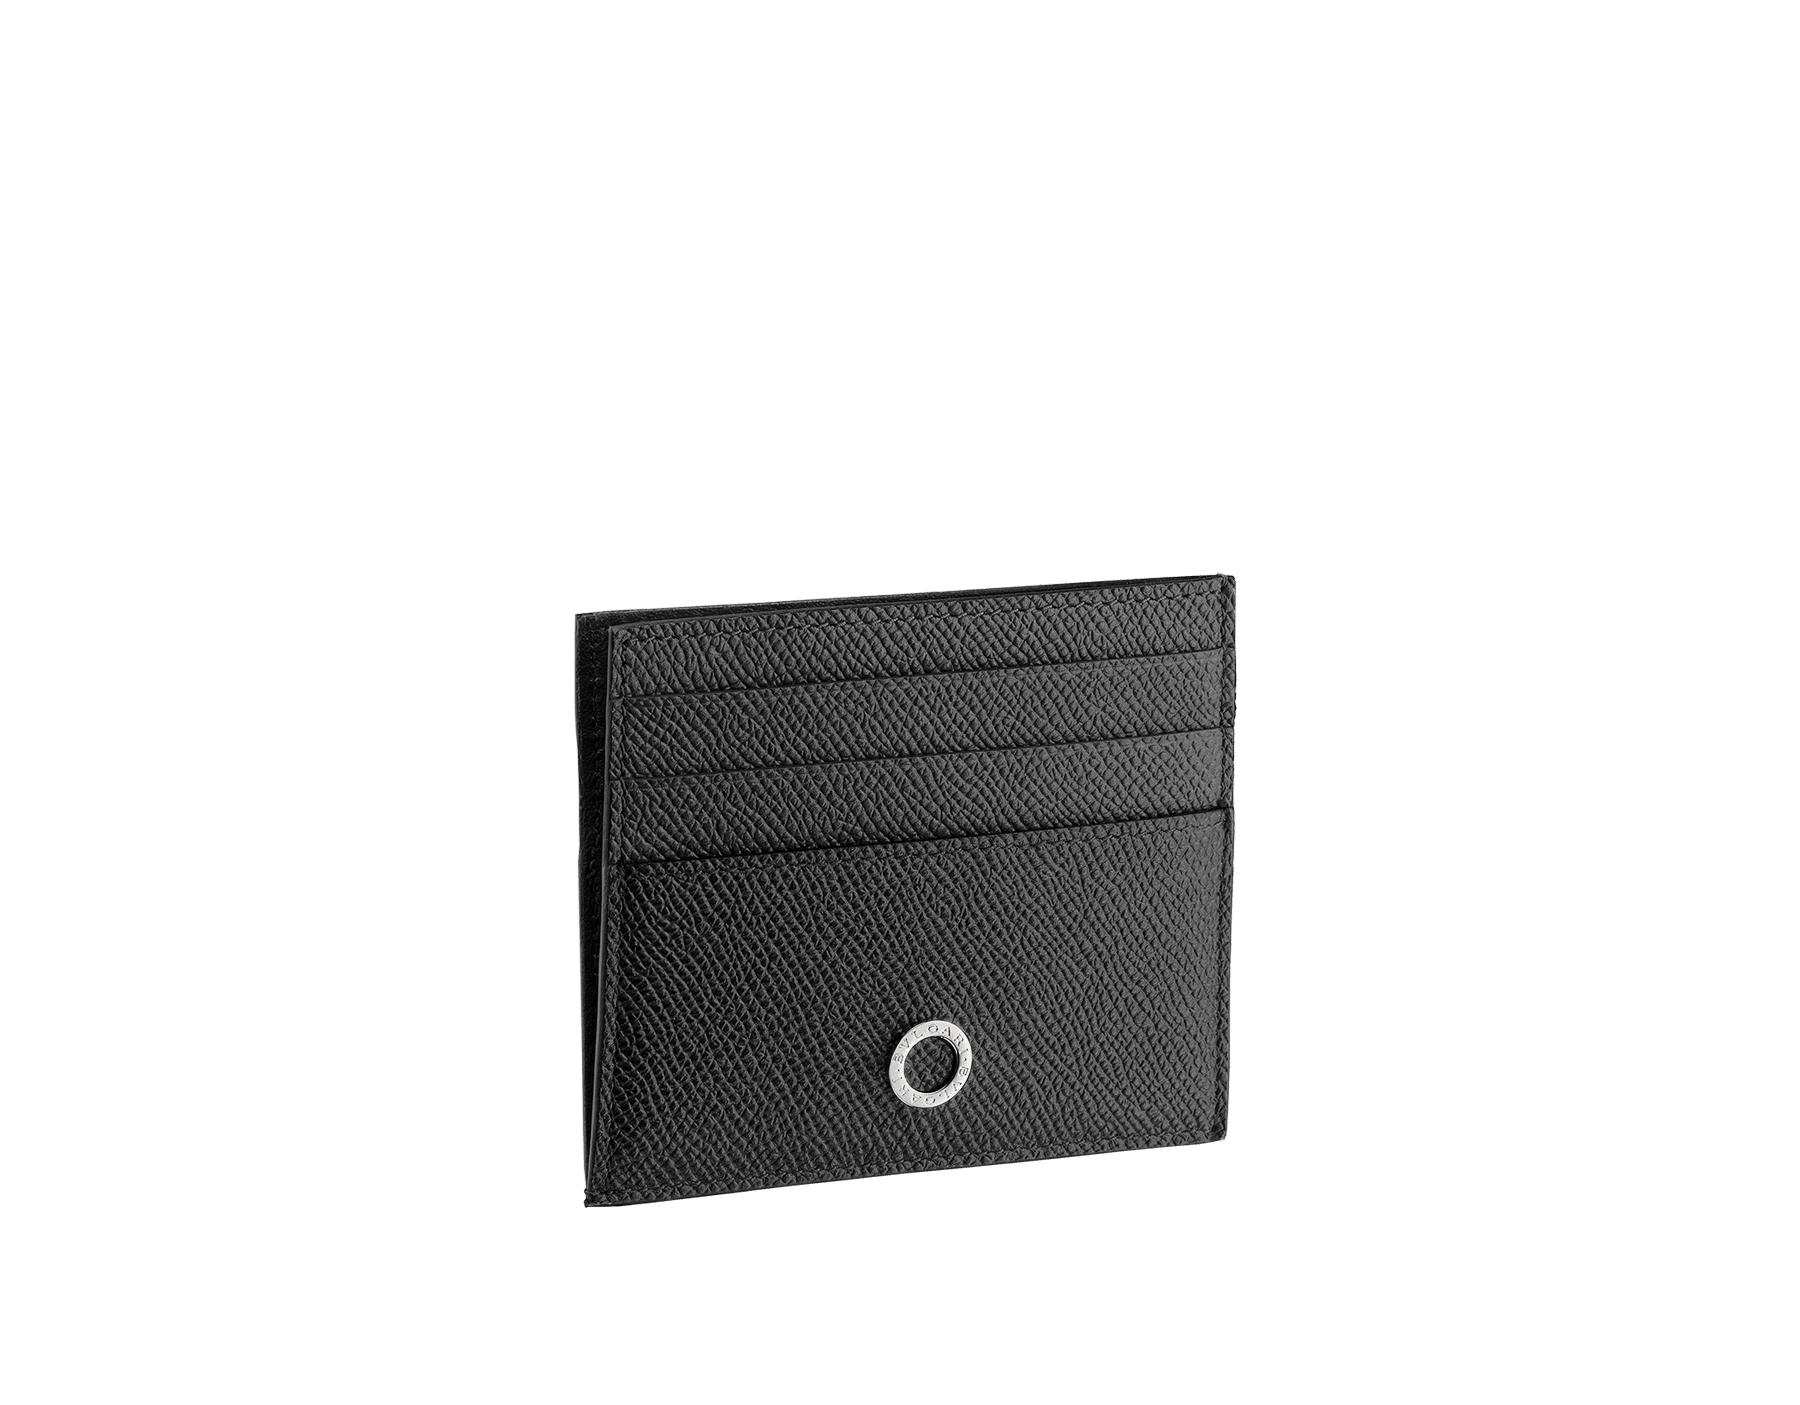 BVLGARI BVLGARI open credit card holder in black grain calf leather and black nappa lining. Iconic logo décor in palladium plated brass. 288524 image 1